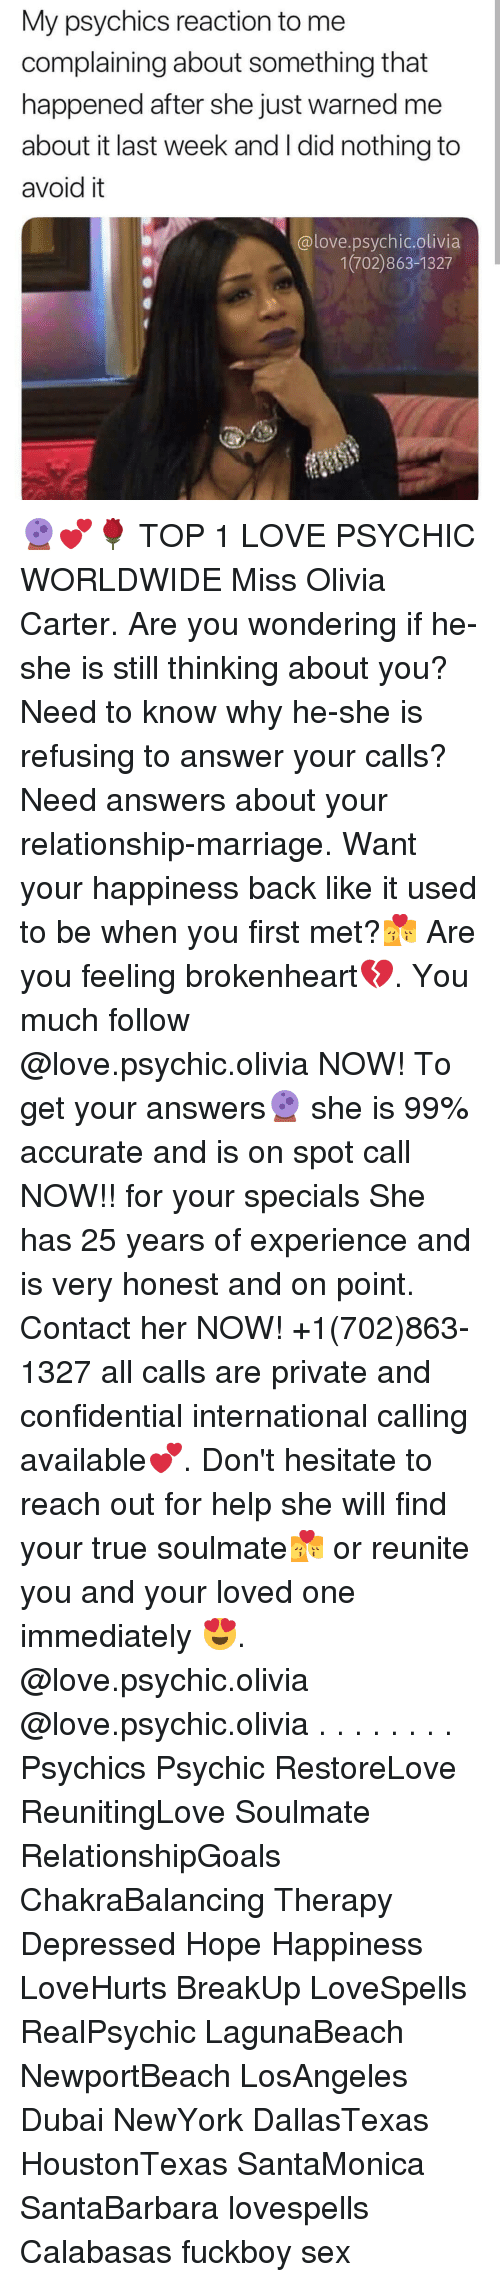 brokenheart: My psychics reaction to me  complaining about something that  happened after she just warned me  about it last week and I did nothing to  avoid it  @love.psychic.olivia  1(702)863-1327 🔮💕🌹 TOP 1 LOVE PSYCHIC WORLDWIDE Miss Olivia Carter. Are you wondering if he-she is still thinking about you? Need to know why he-she is refusing to answer your calls? Need answers about your relationship-marriage. Want your happiness back like it used to be when you first met?💏 Are you feeling brokenheart💔. You much follow @love.psychic.olivia NOW! To get your answers🔮 she is 99% accurate and is on spot call NOW!! for your specials She has 25 years of experience and is very honest and on point. Contact her NOW! +1(702)863-1327 all calls are private and confidential international calling available💕. Don't hesitate to reach out for help she will find your true soulmate💏 or reunite you and your loved one immediately 😍. @love.psychic.olivia @love.psychic.olivia . . . . . . . . Psychics Psychic RestoreLove ReunitingLove Soulmate RelationshipGoals ChakraBalancing Therapy Depressed Hope Happiness LoveHurts BreakUp LoveSpells RealPsychic LagunaBeach NewportBeach LosAngeles Dubai NewYork DallasTexas HoustonTexas SantaMonica SantaBarbara lovespells Calabasas fuckboy sex